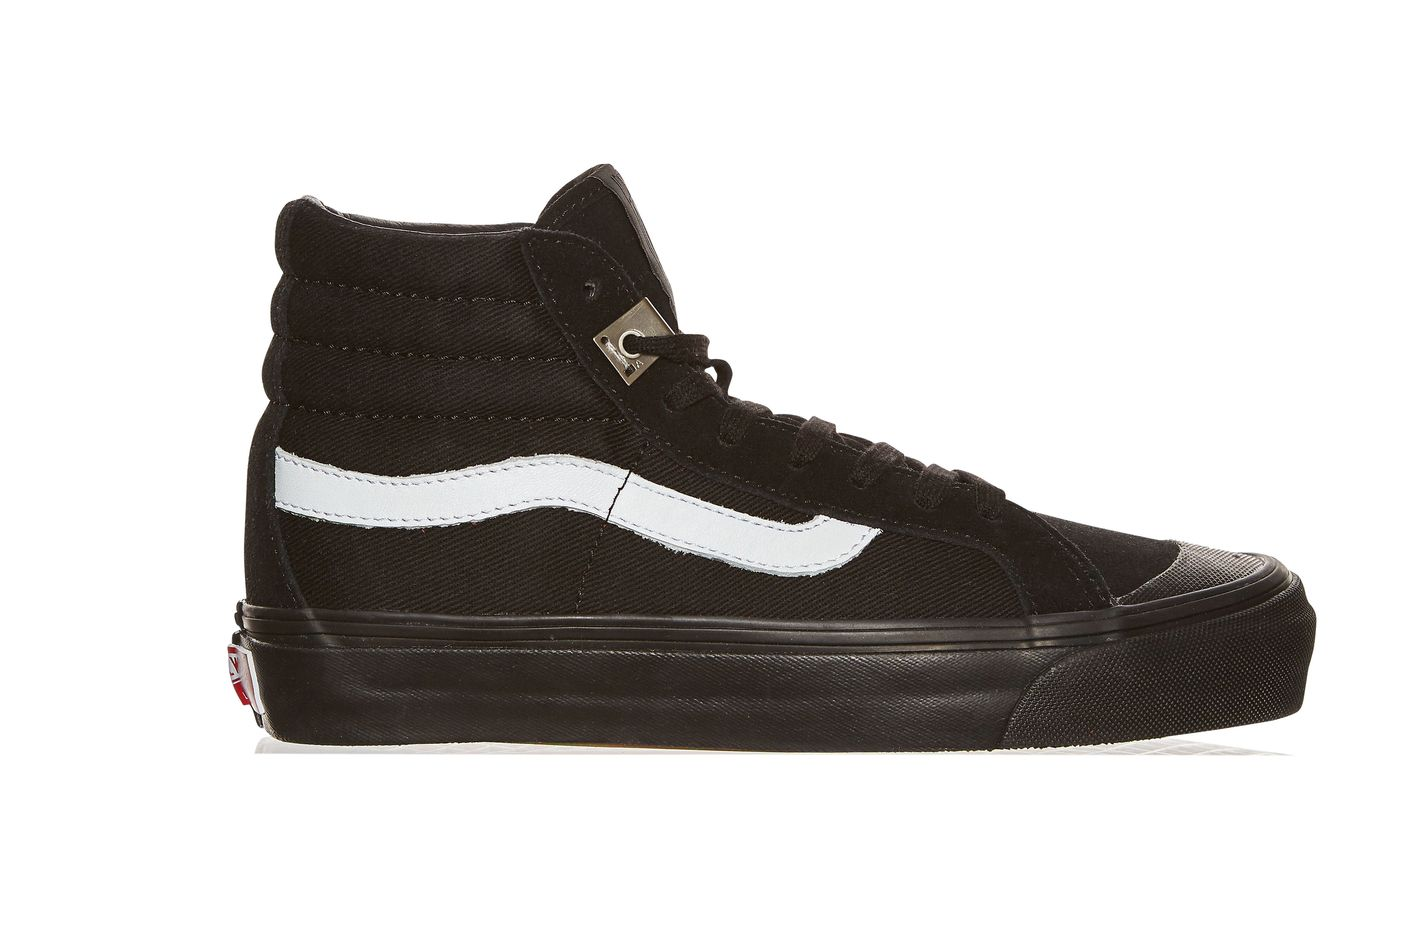 5d12cf22f2 Where to Buy the New Alyx and Vans Sneaker Collaboration